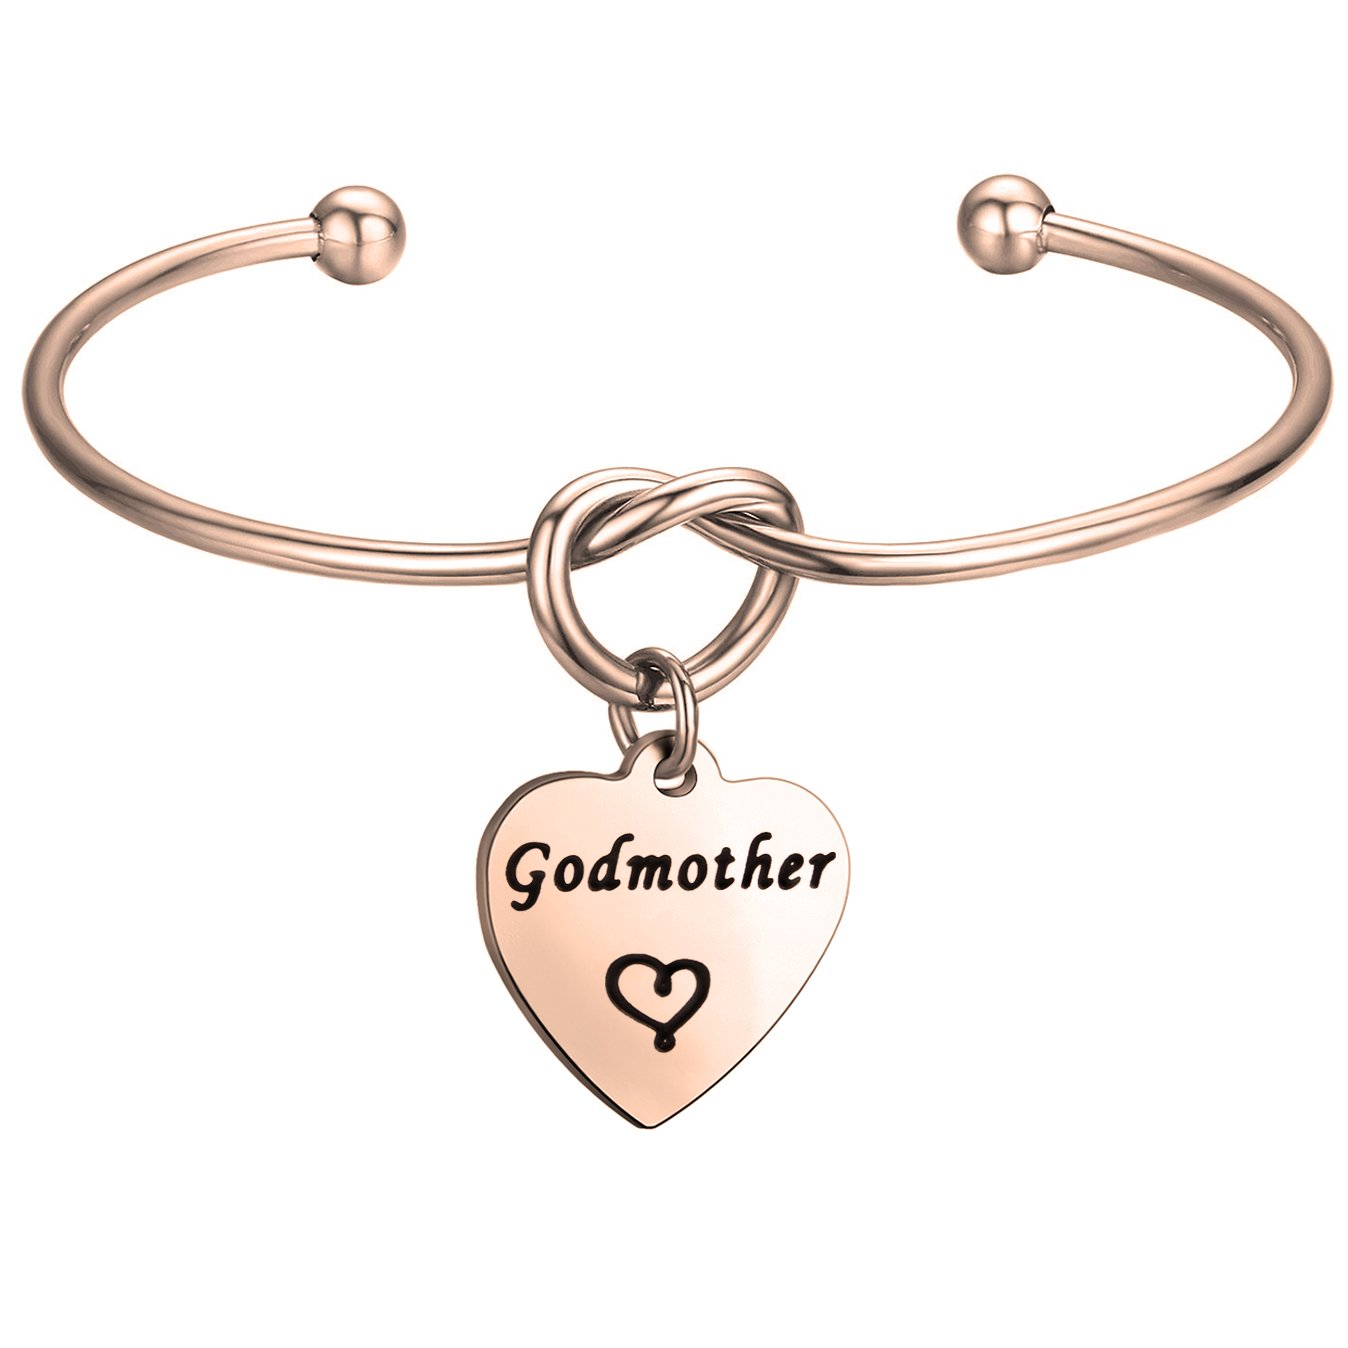 FEELMEM Godmother Bangle Bracelet,Goddaughter Bangle Bracelet, for Godmothers/Goddaughters B07BF95Z1M_US